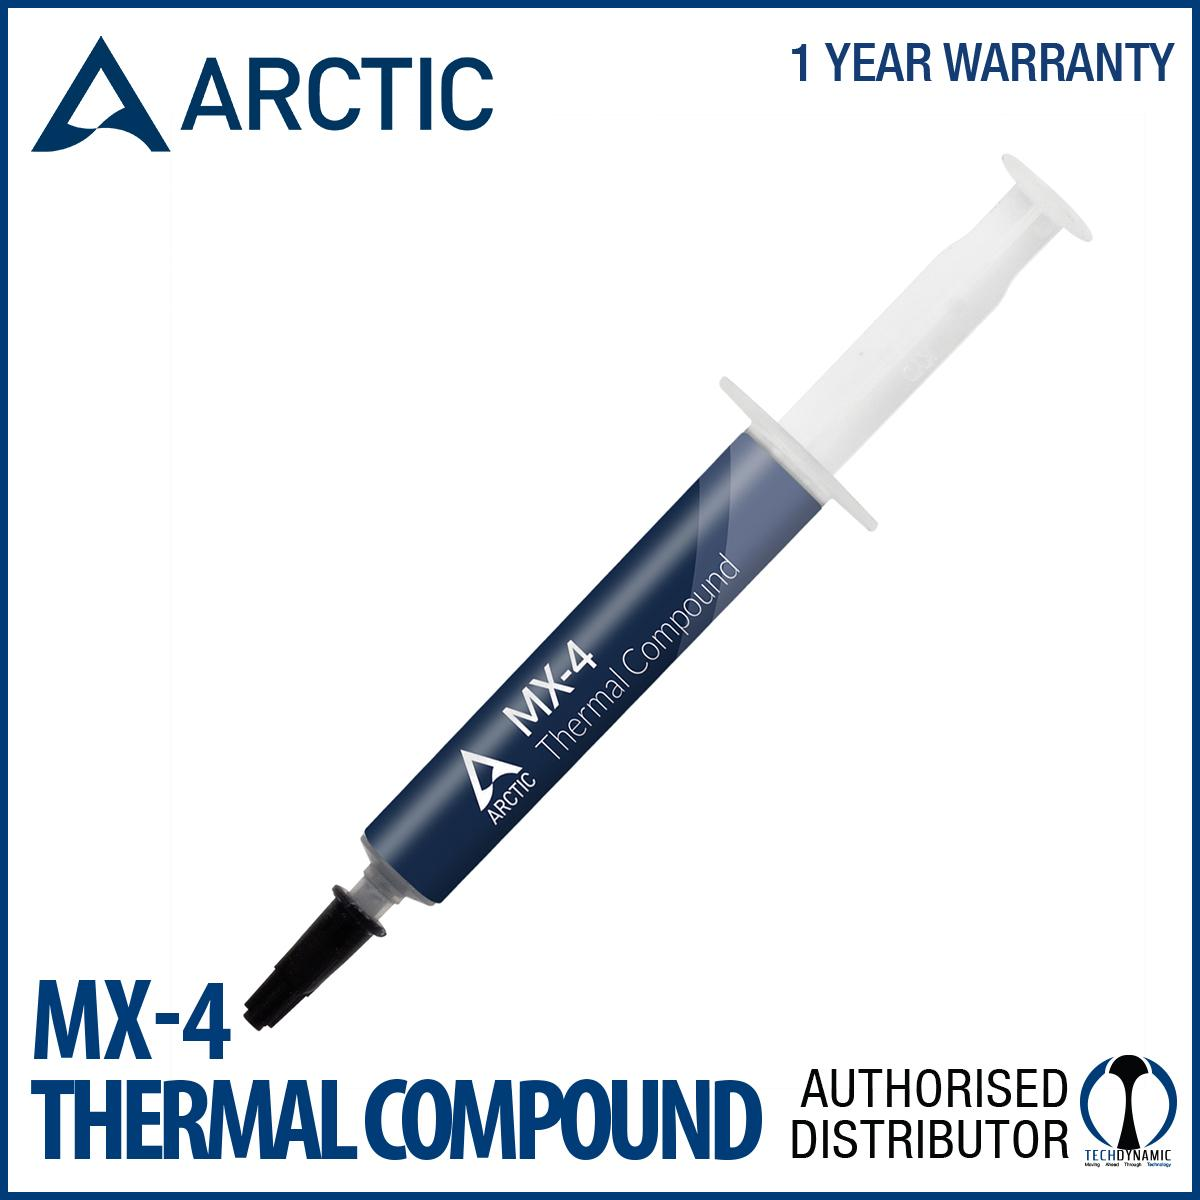 How To Buy Arctic Mx 4 Thermal Compound